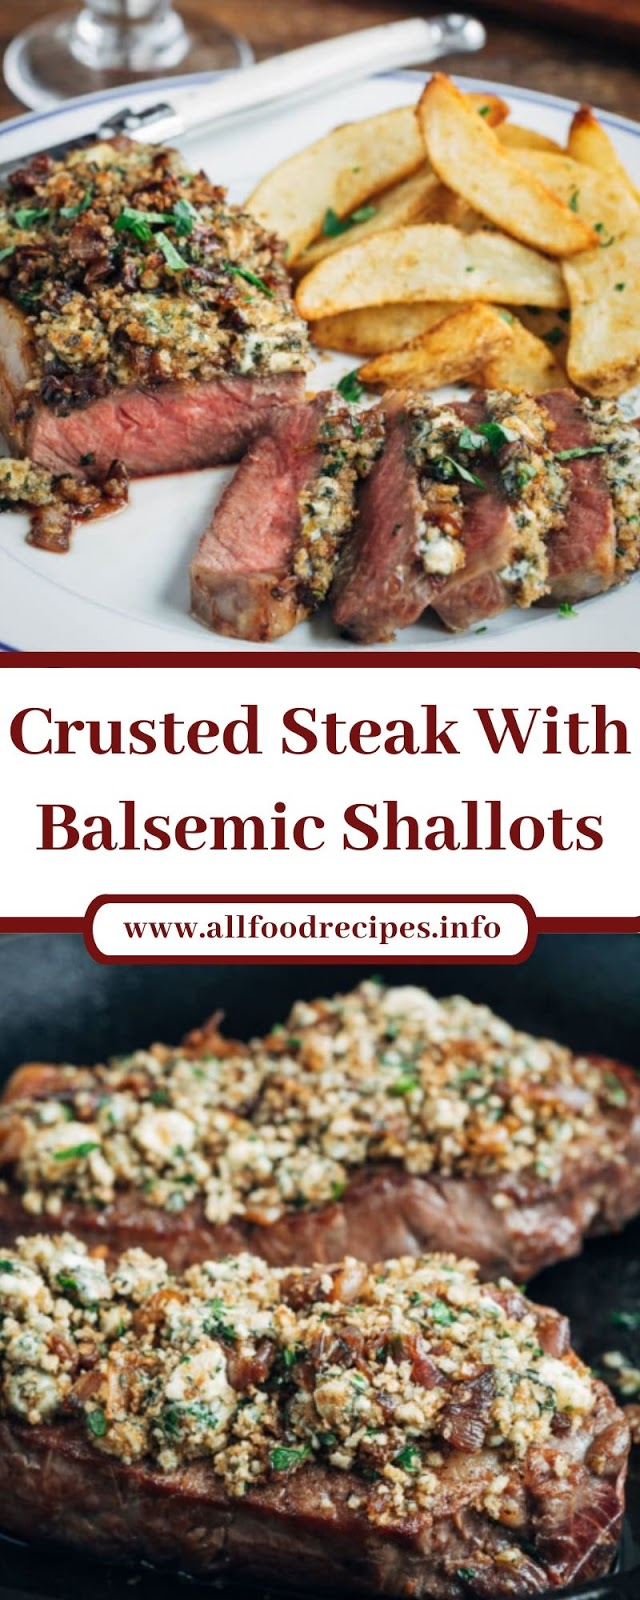 Crusted Steak With Balsemic Shallots